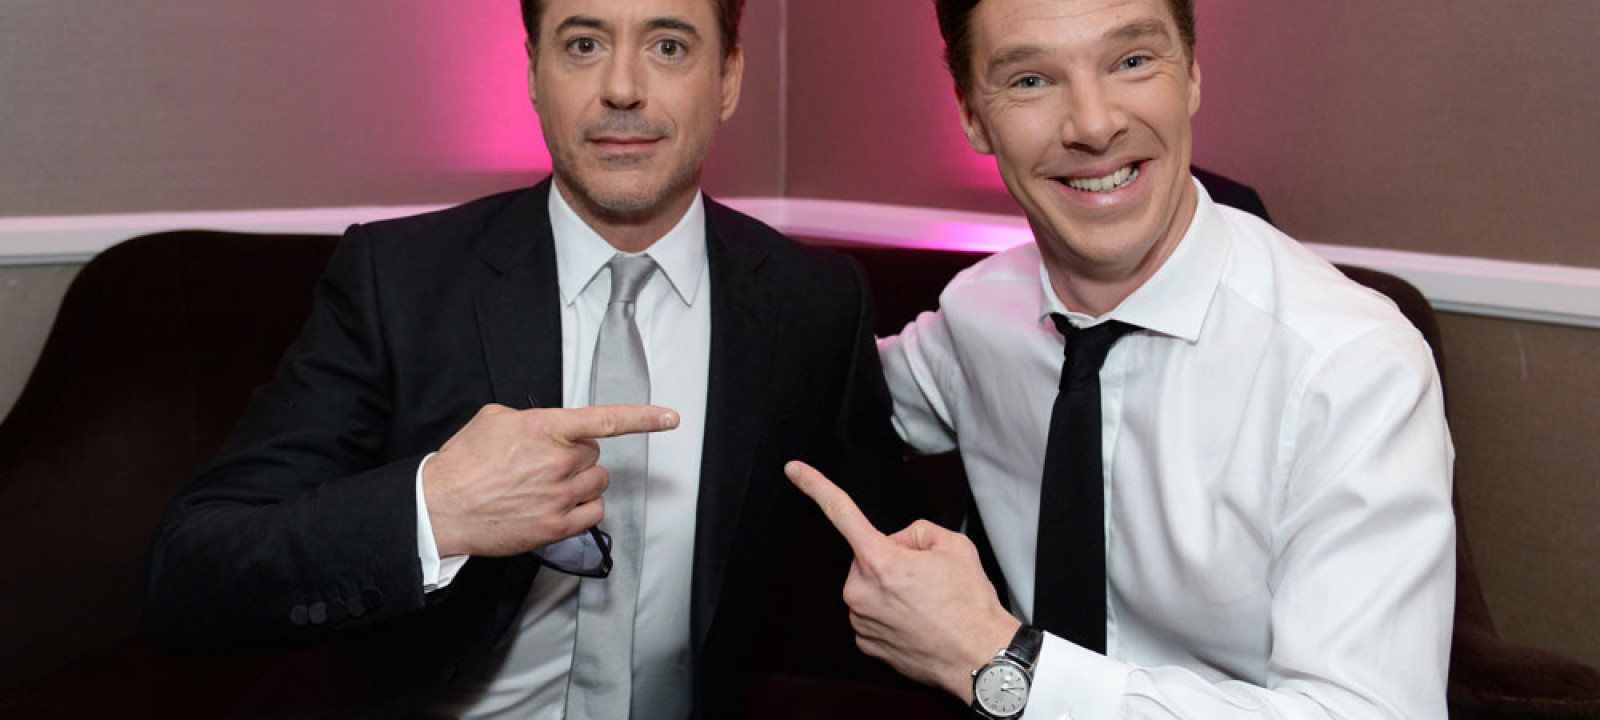 Robert Downey Junior and Benedict Cumberbatch